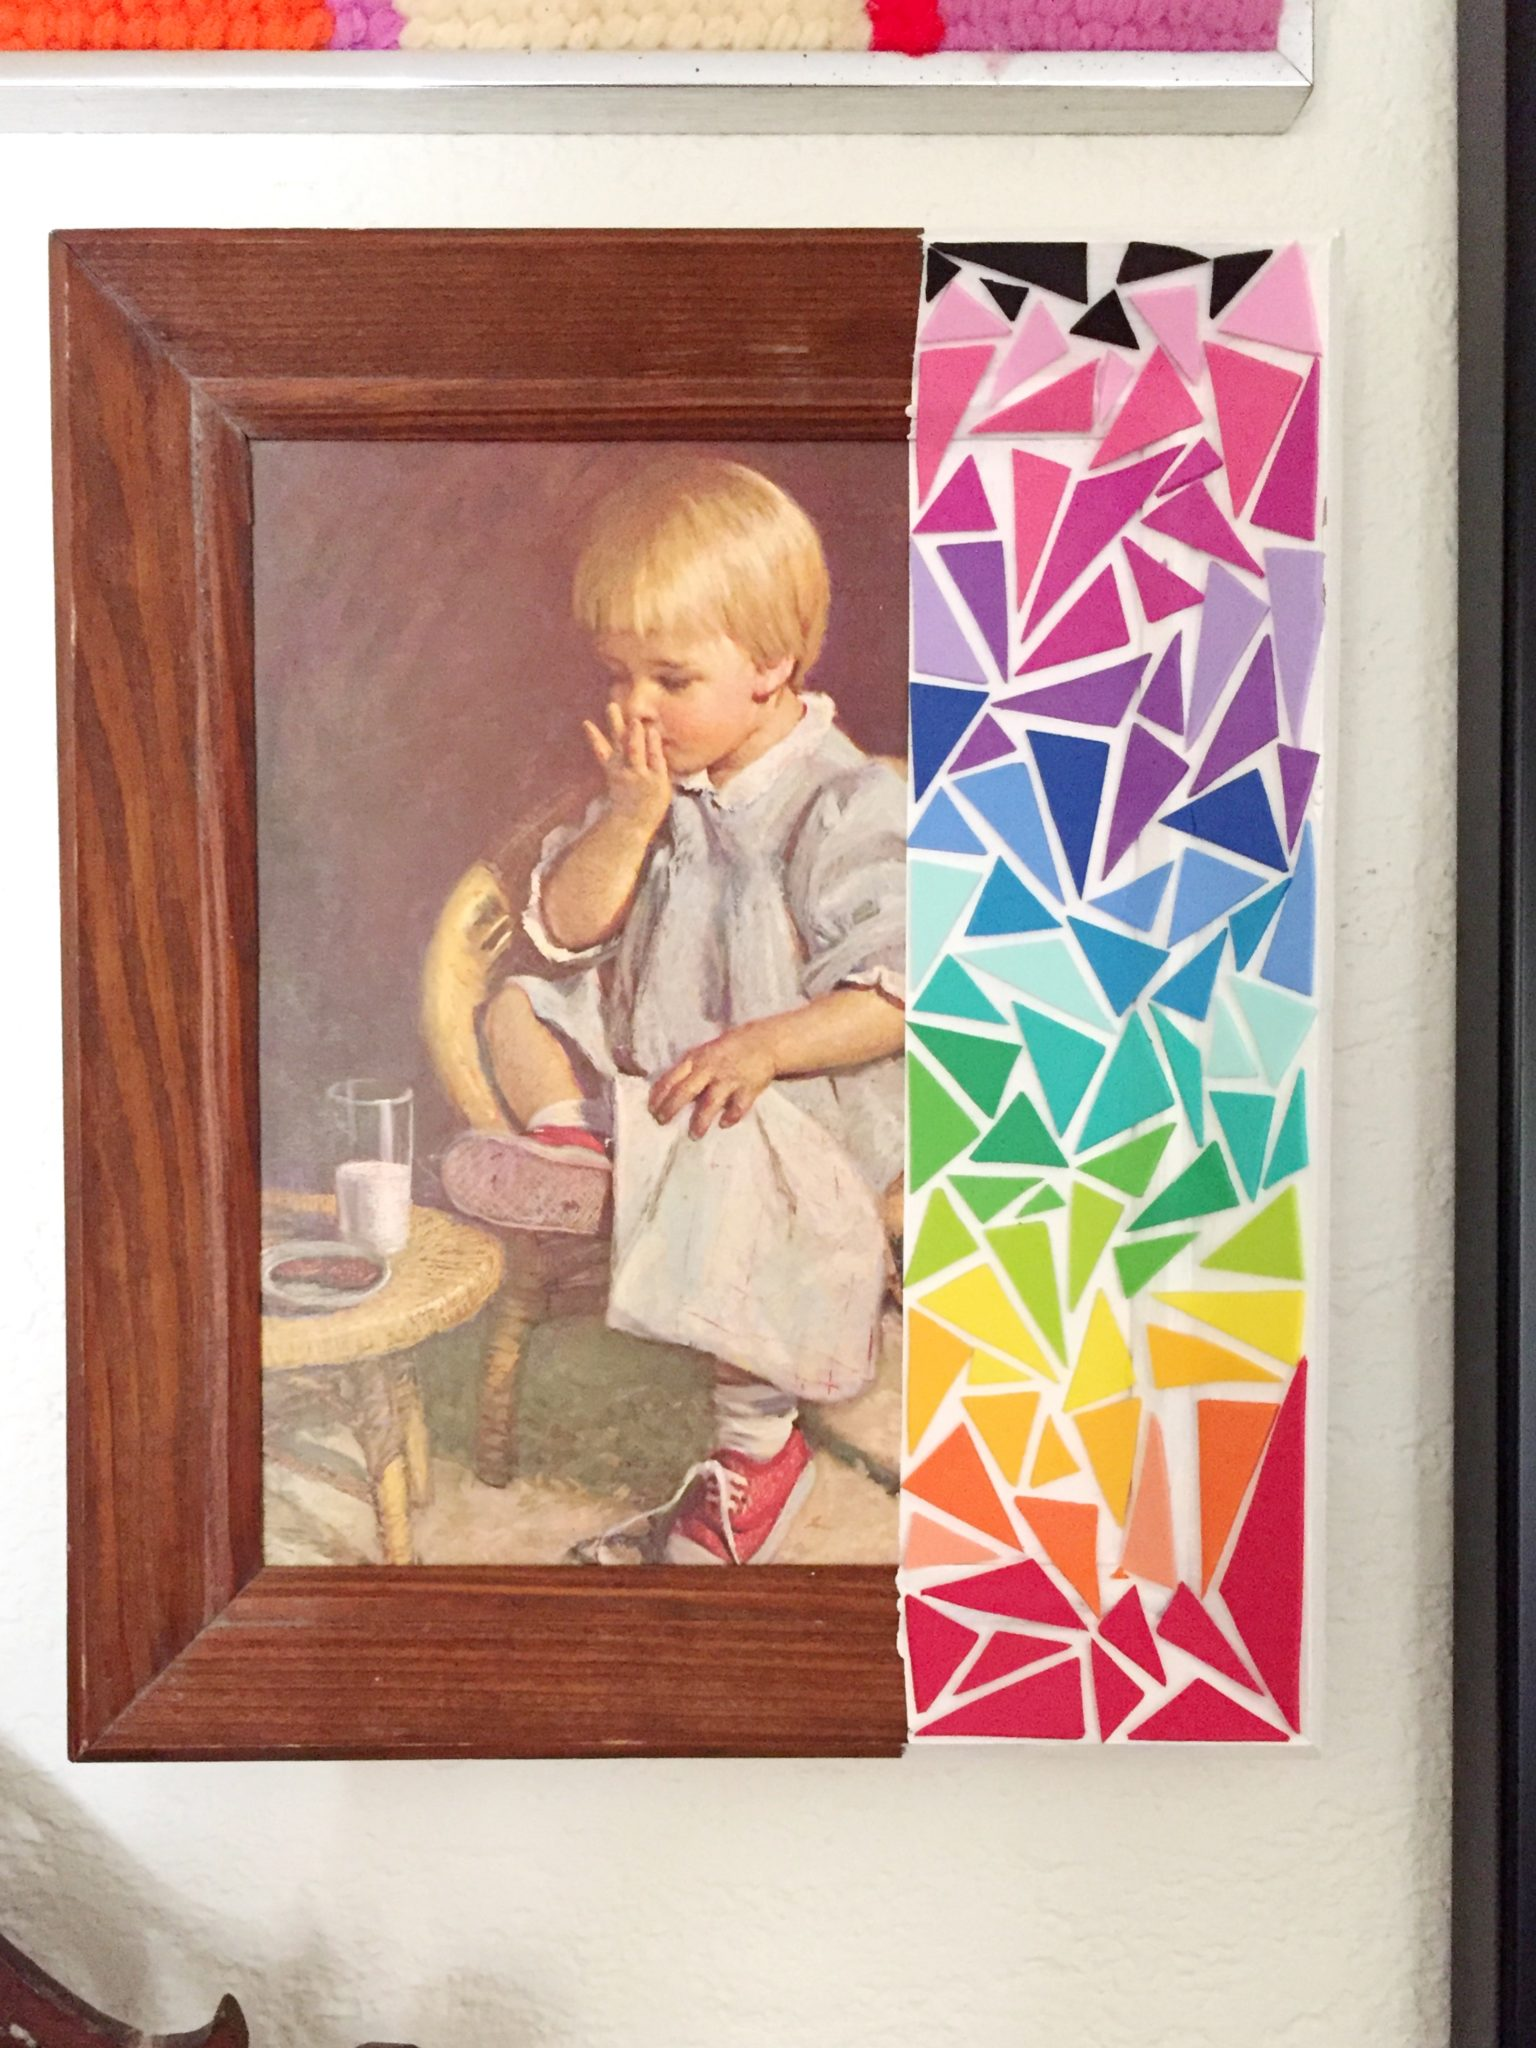 Making rainbow thrift store art.